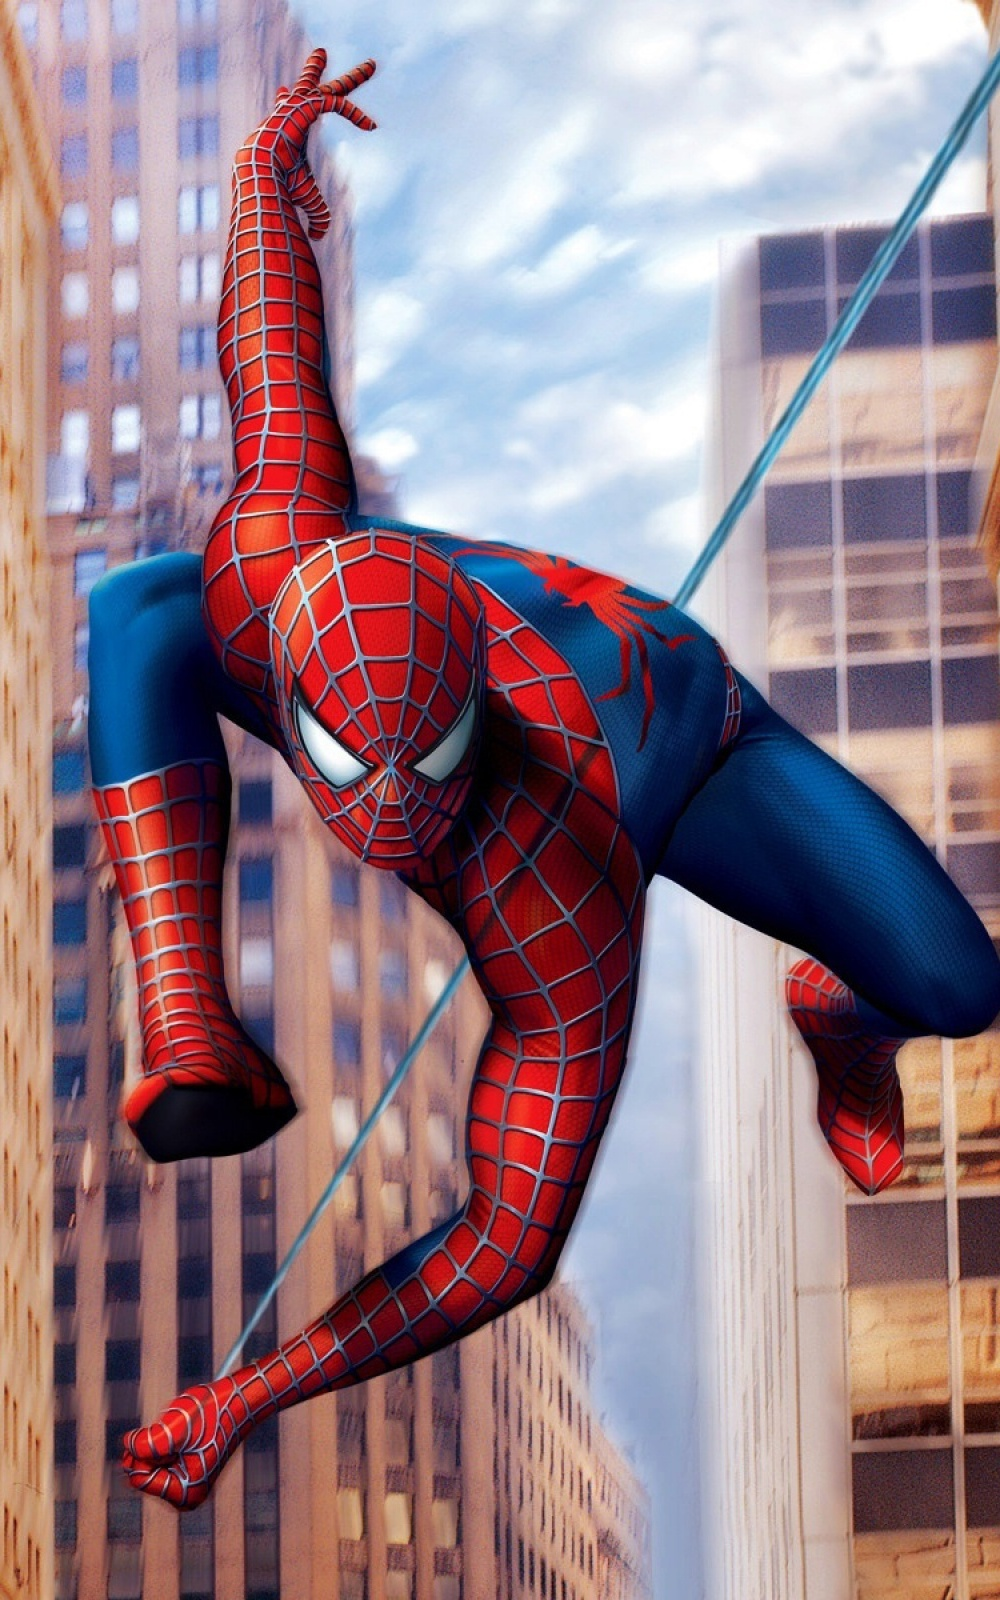 Download Now Spiderman Hd Wallpapers Mobile 132467 Hd